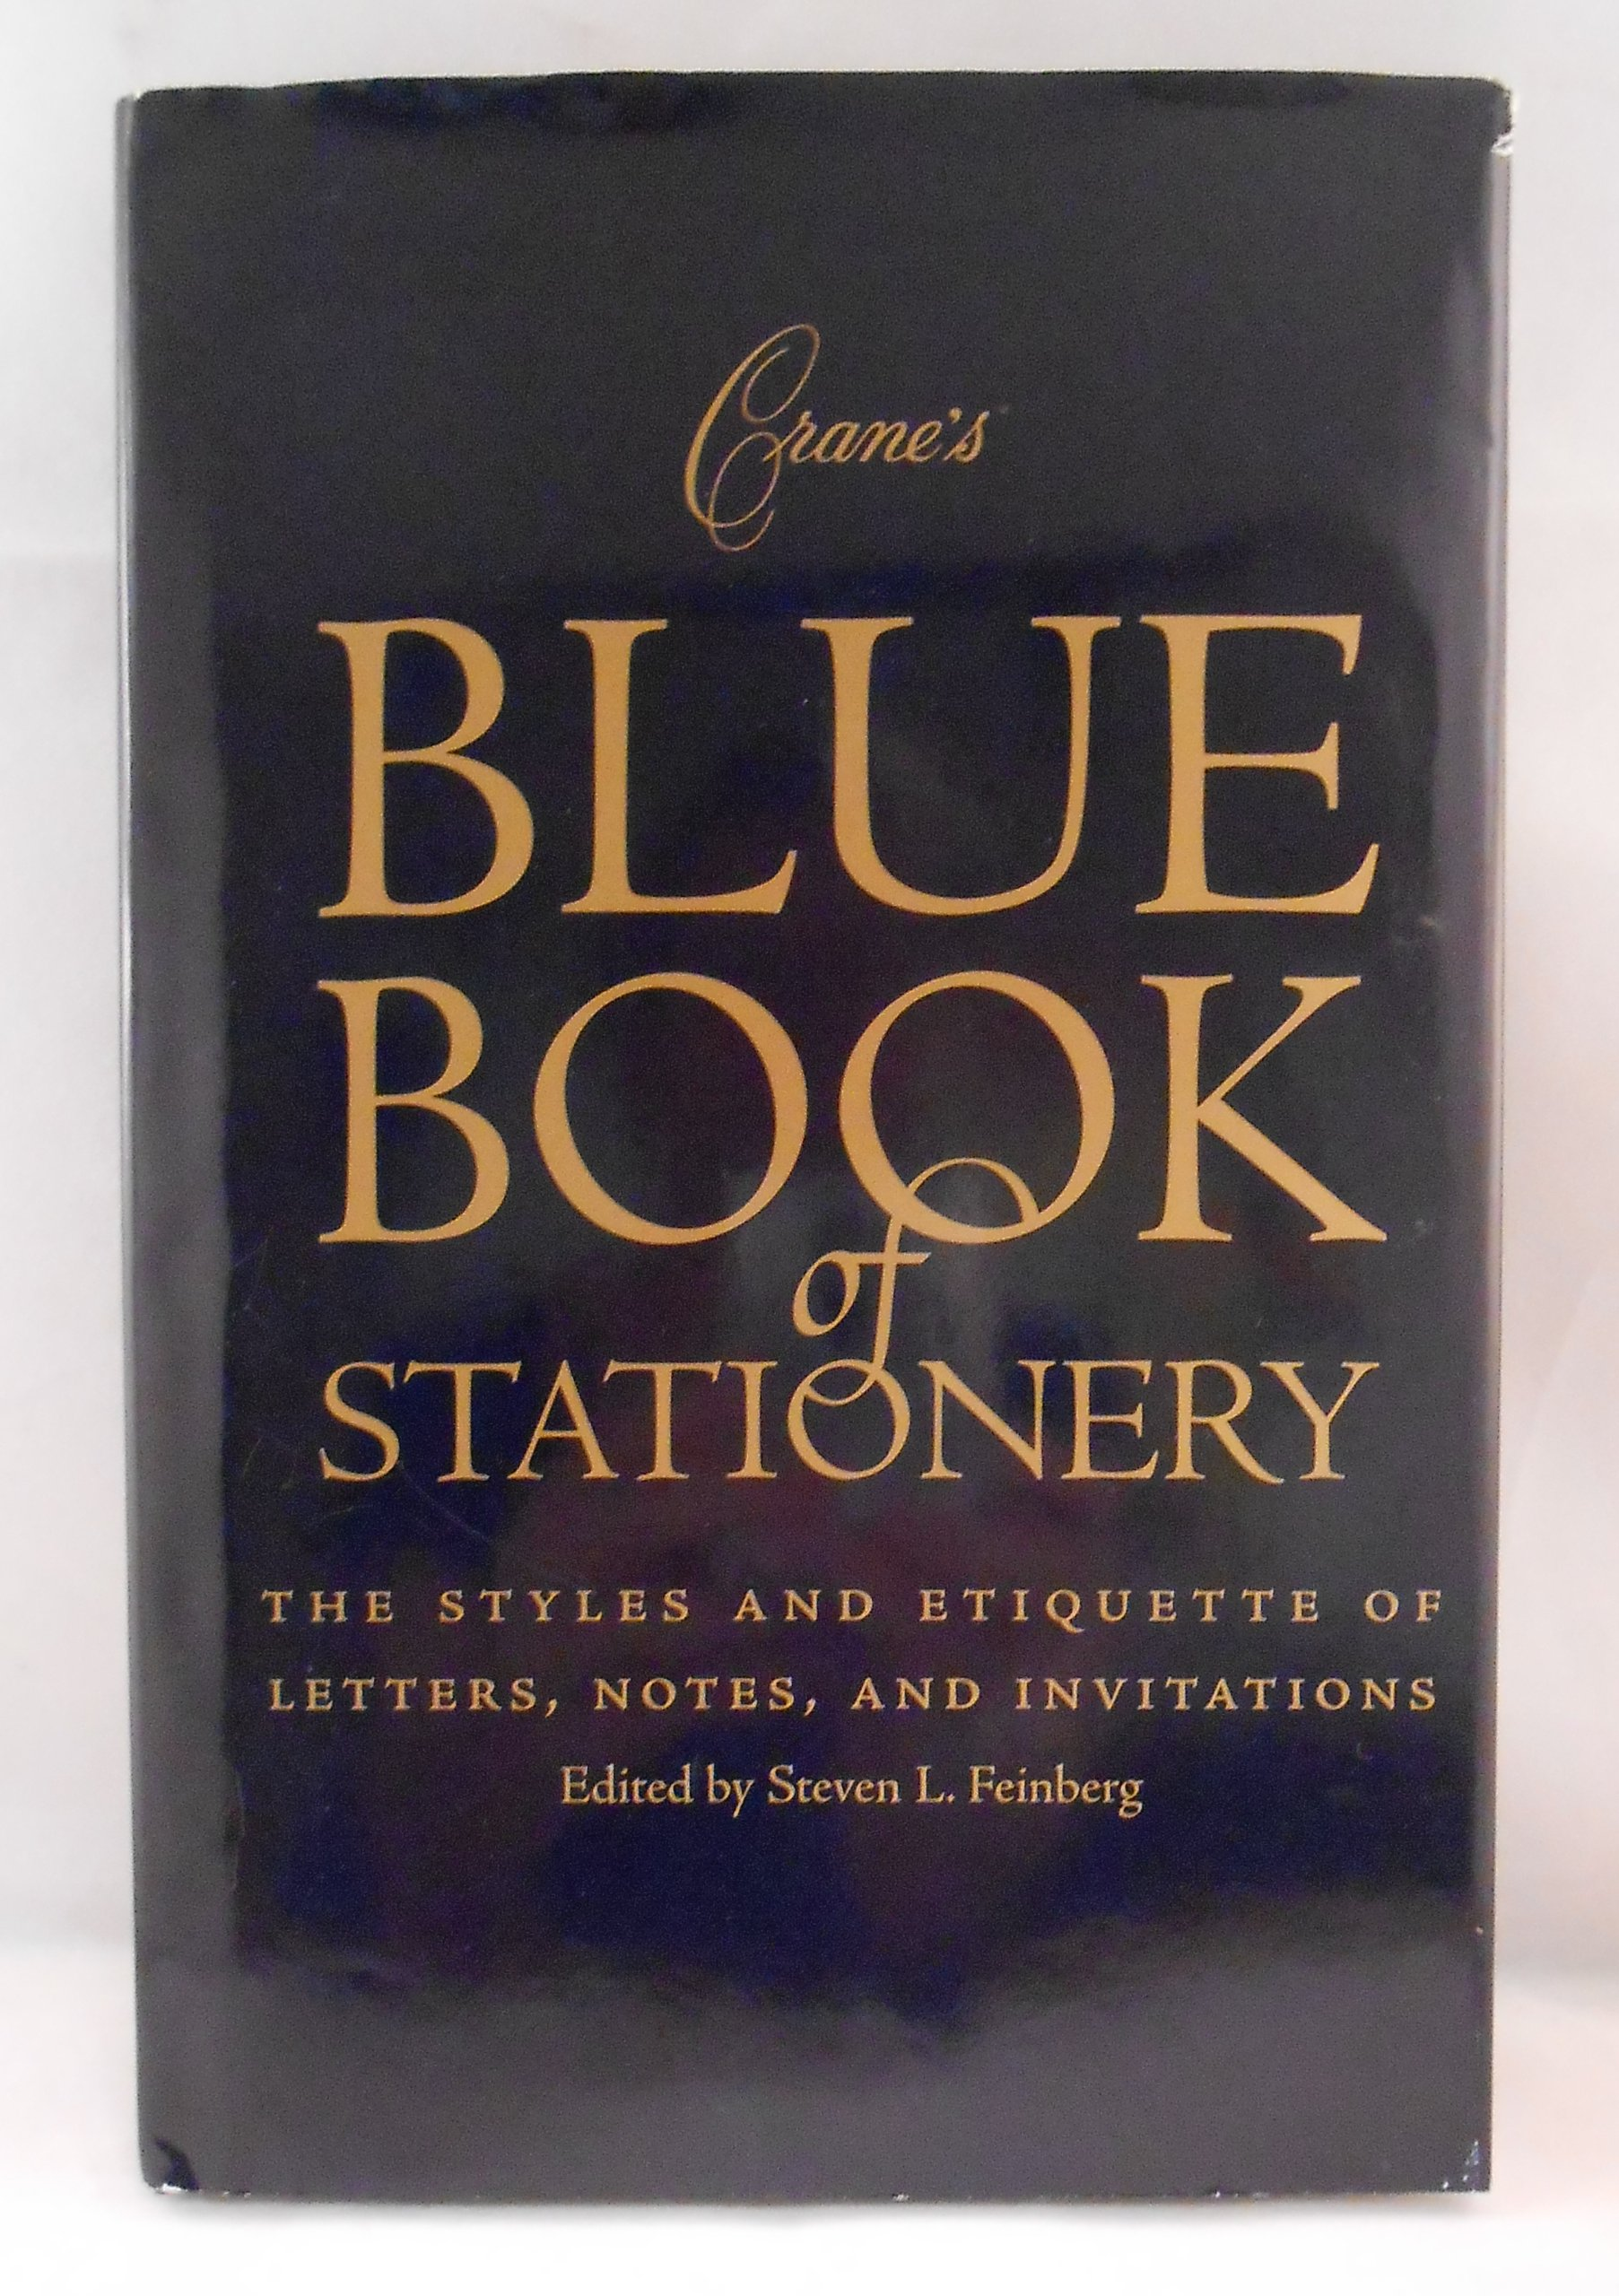 Crane's Blue Book of Stationery: The Styles and Etiquette of Letters, Notes, and Invitations pdf